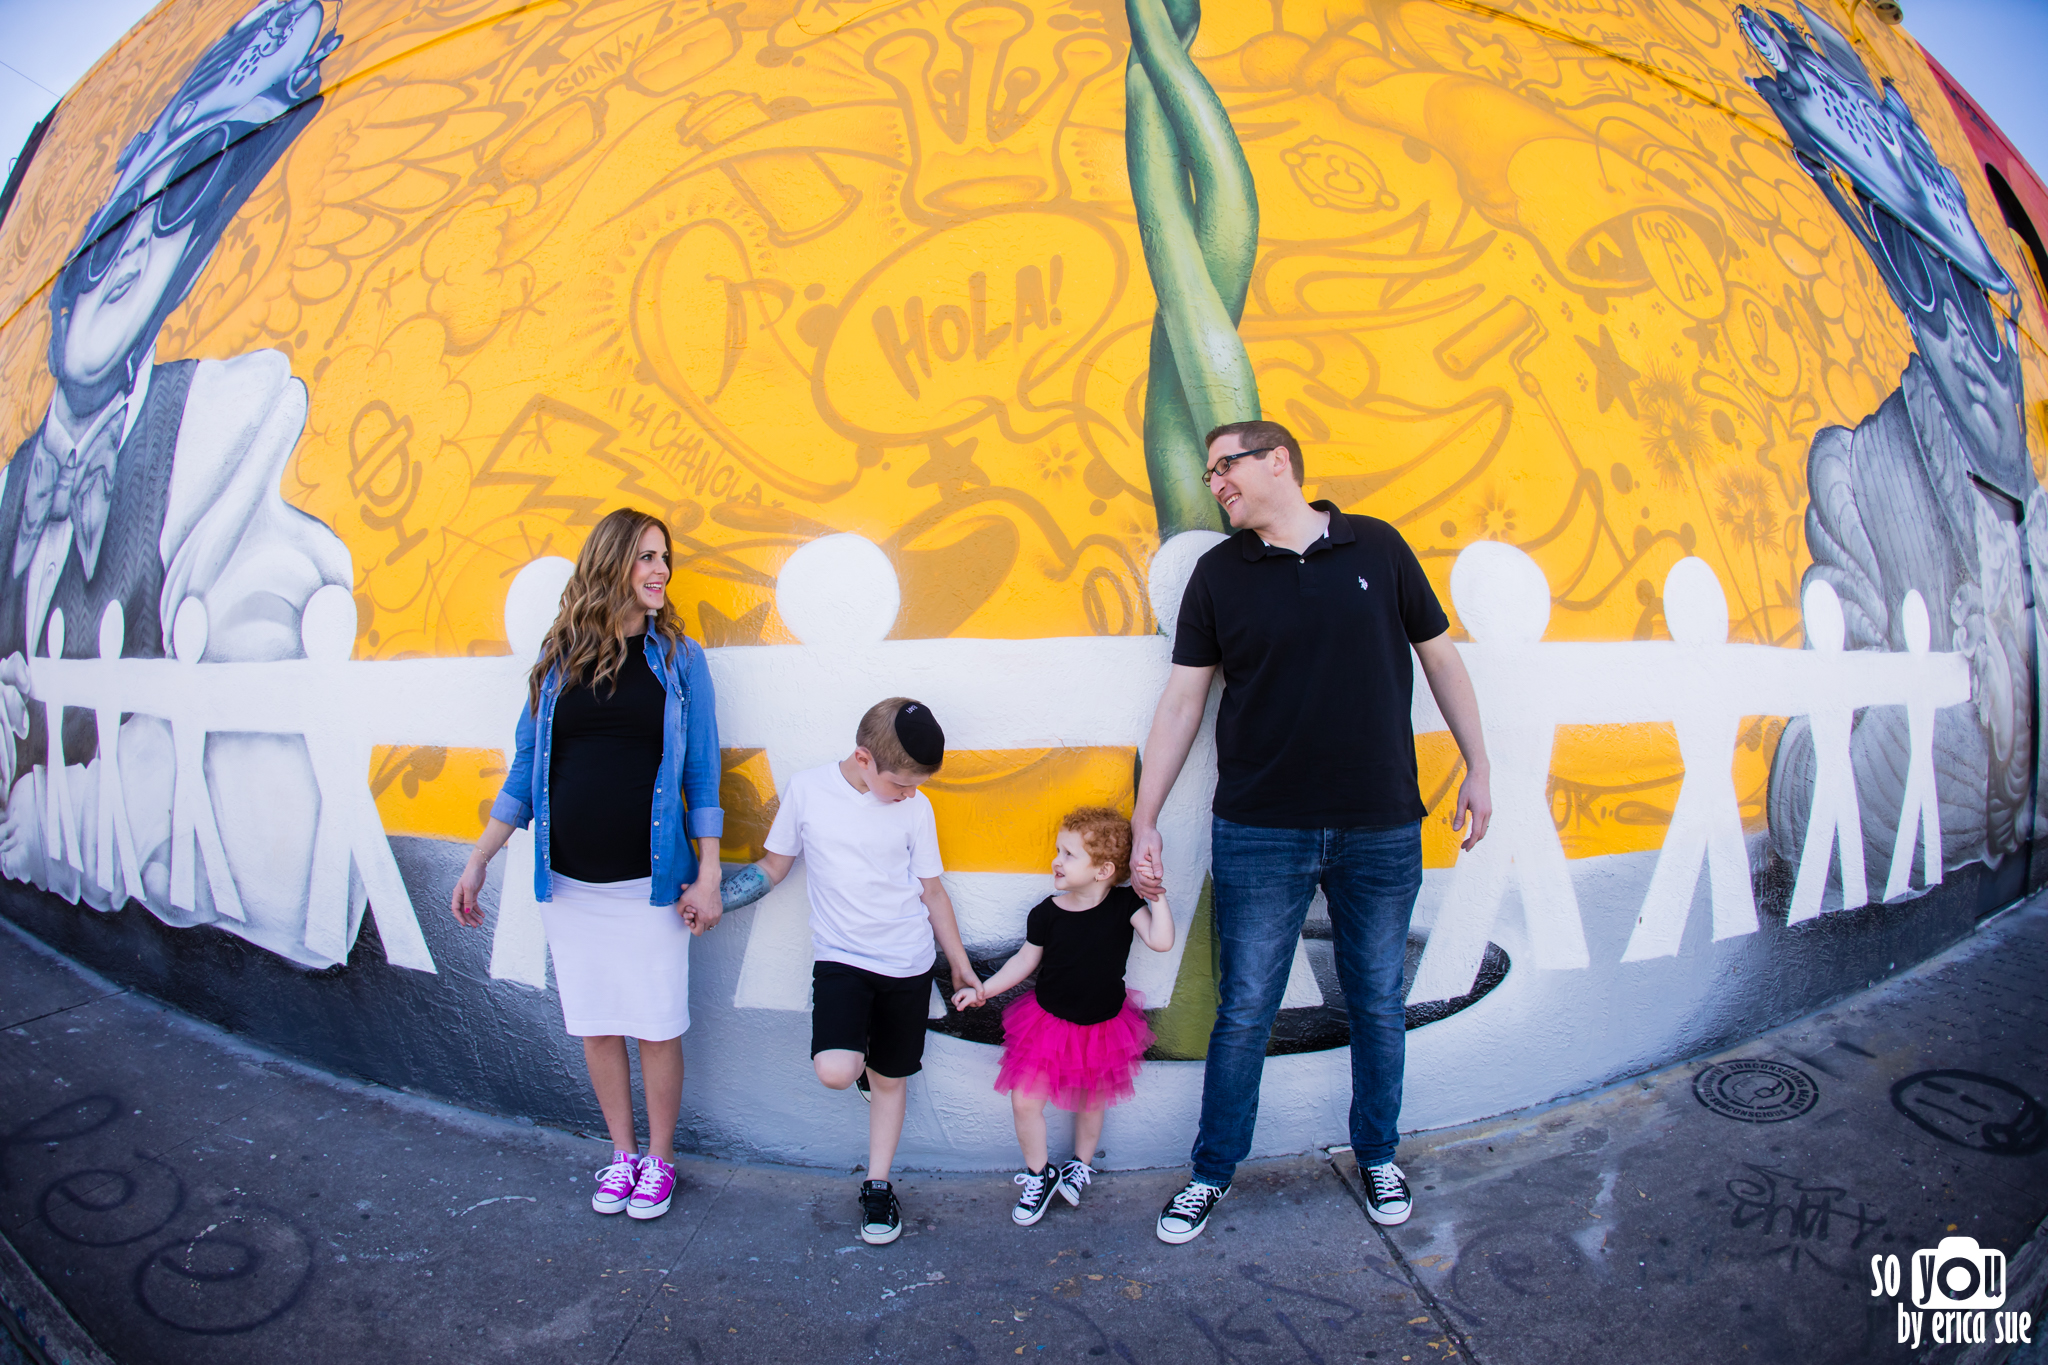 wynwood-family-photography-so-you-by-erica-sue-ft-lauderdale-davie-miami-fl-florida-2806.jpg